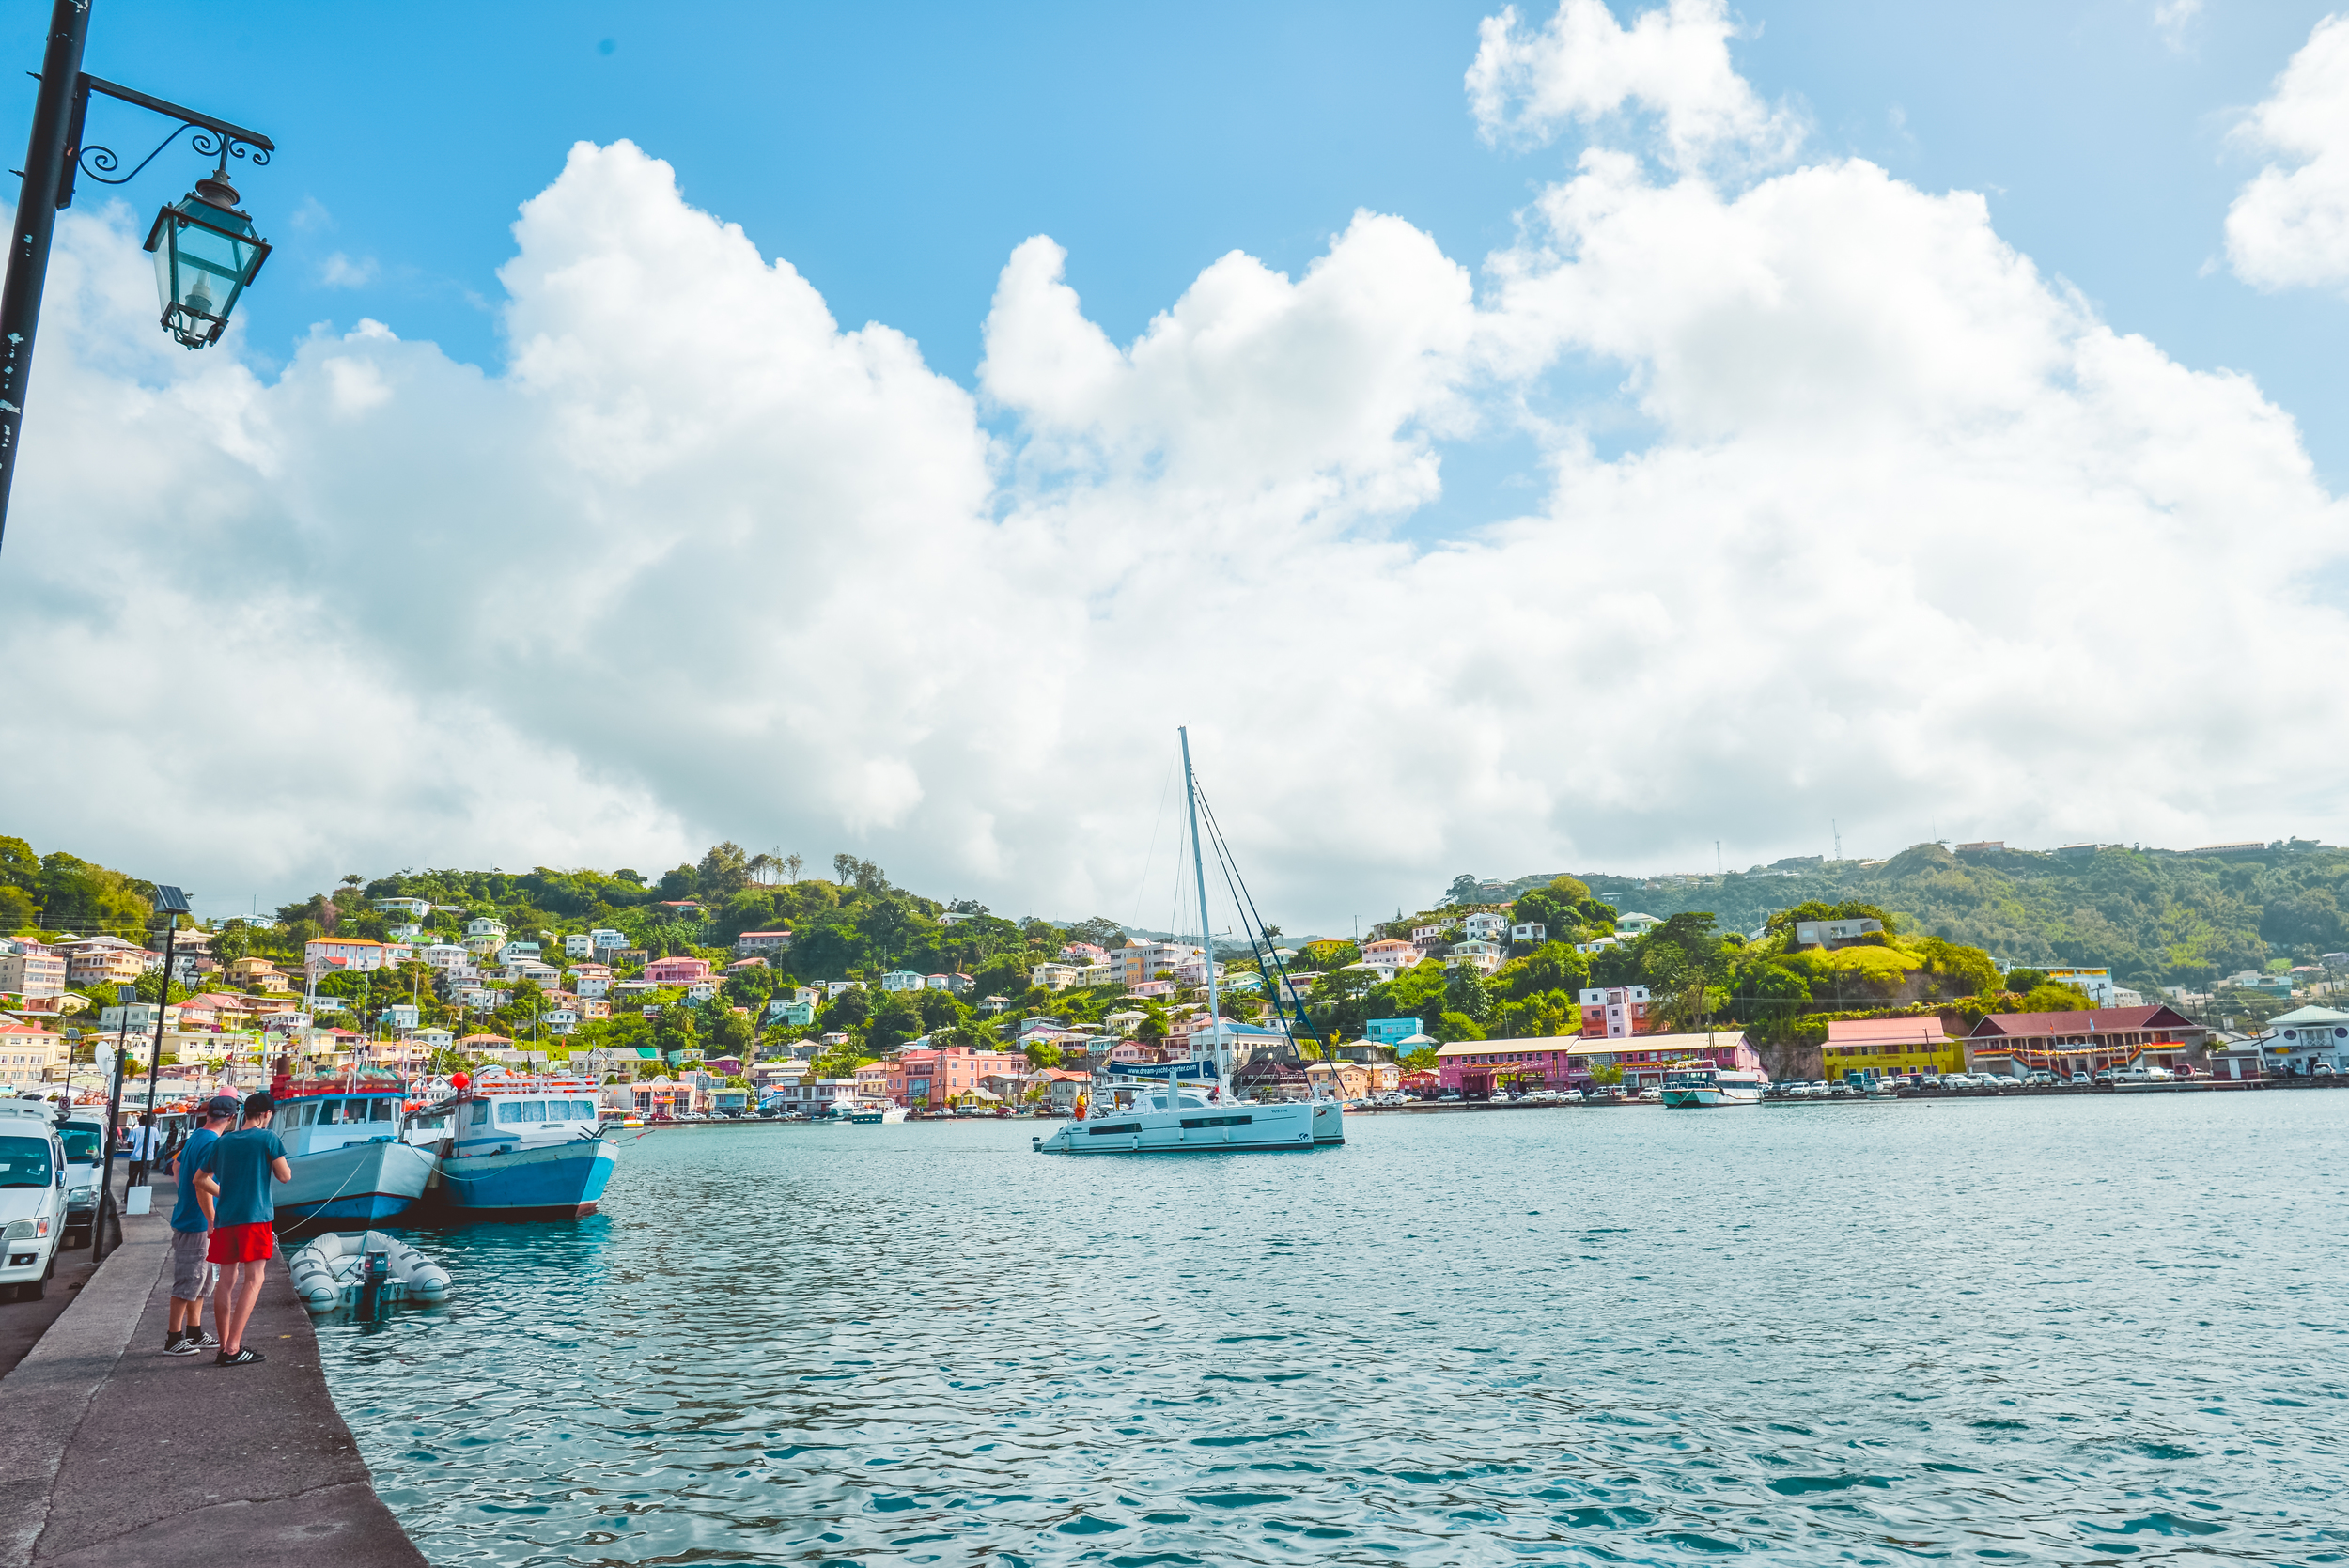 The port of St Georges, Grenada - Spice Isle